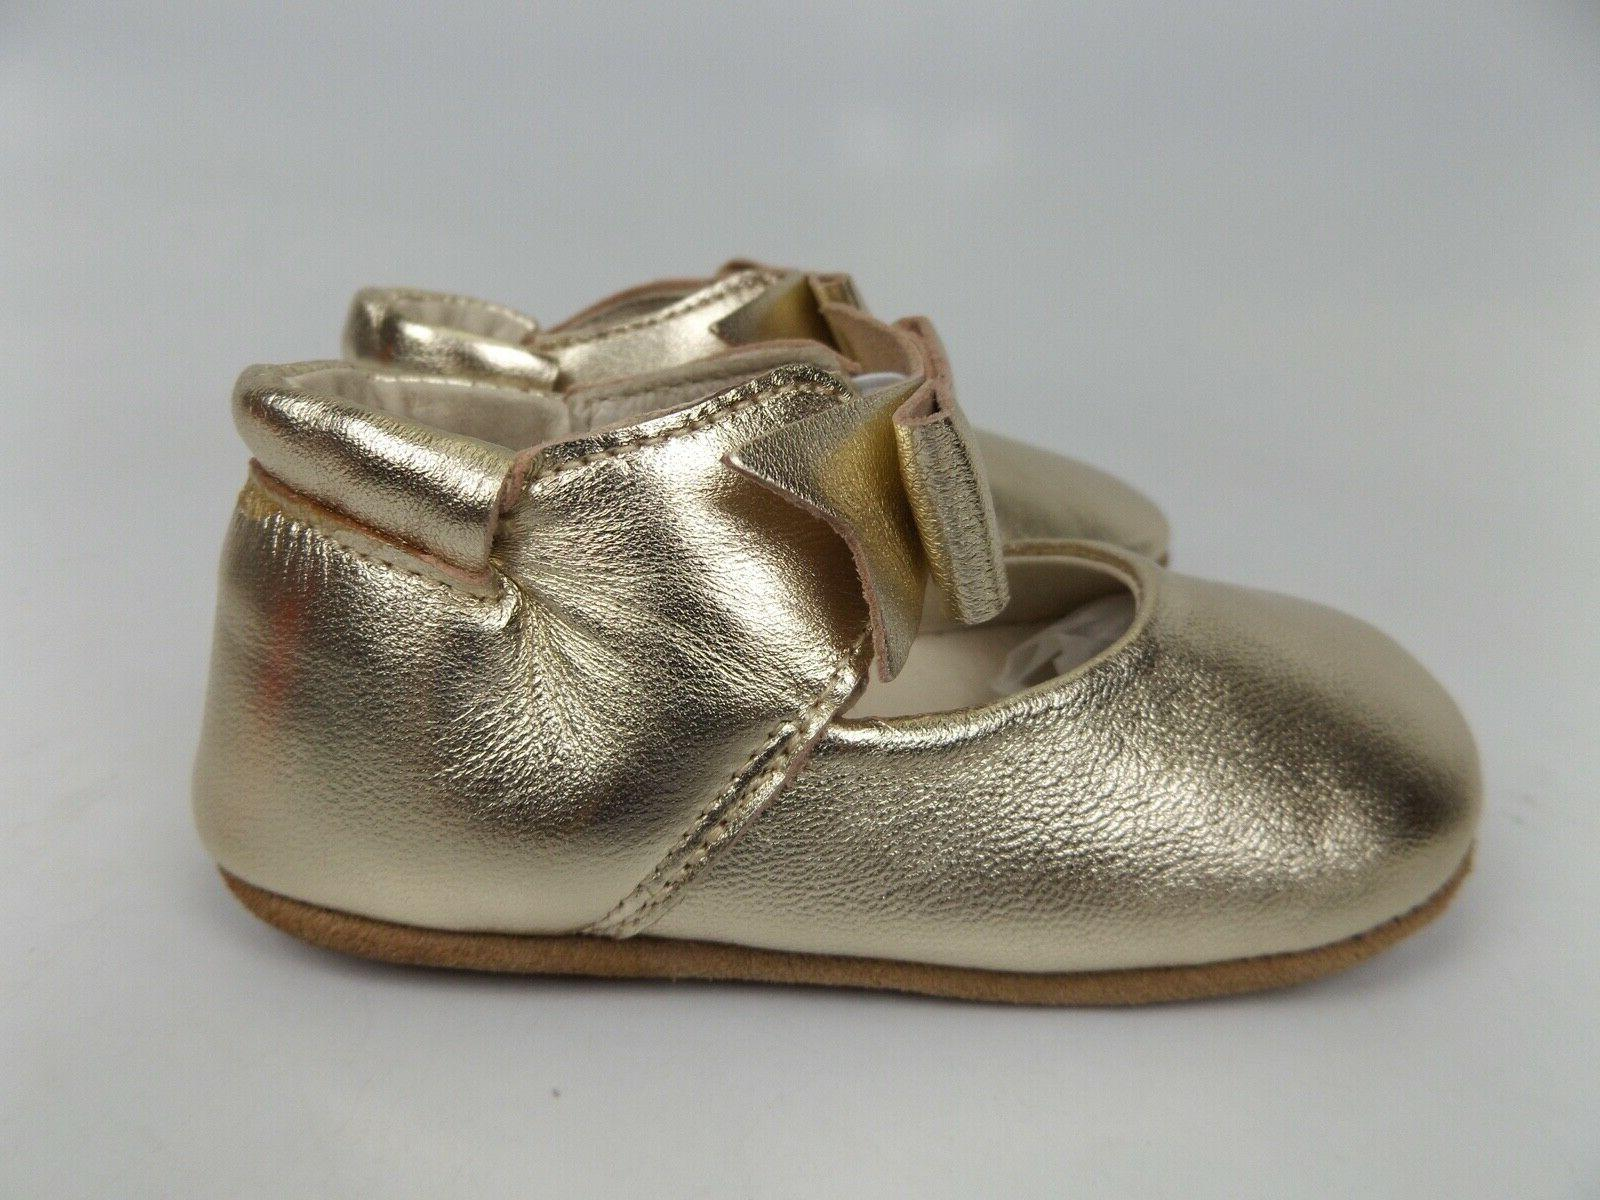 NEW! Robeez Sophia Soft Sole Leather Months